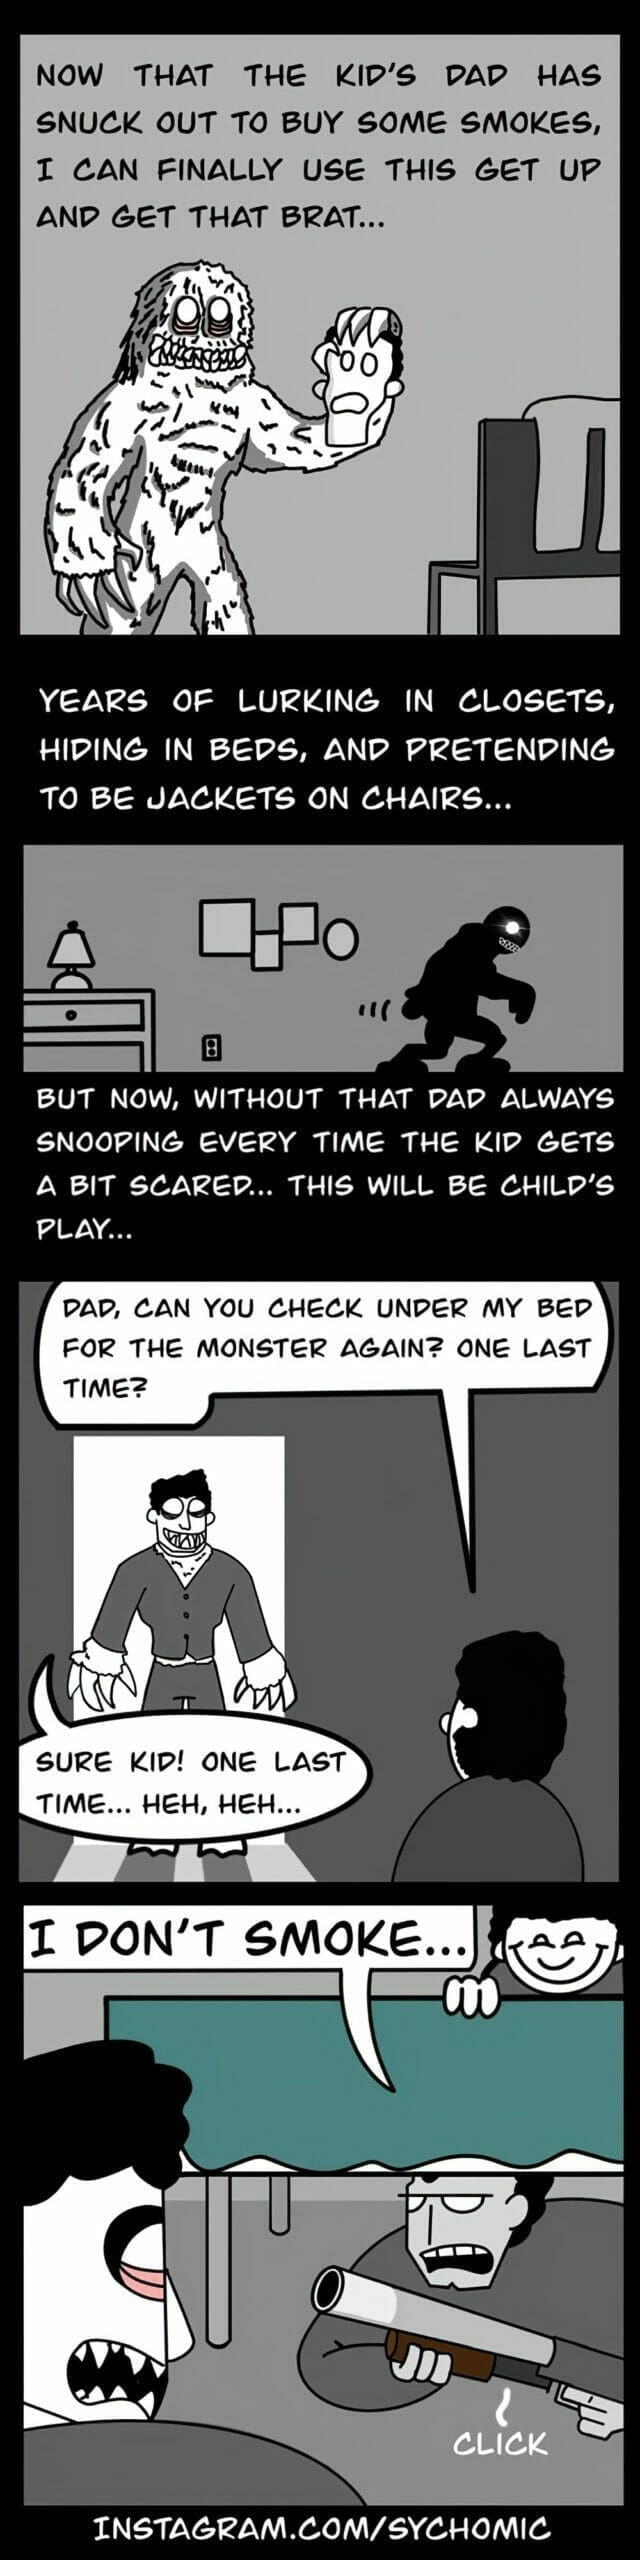 Sychomic's monster under the bed